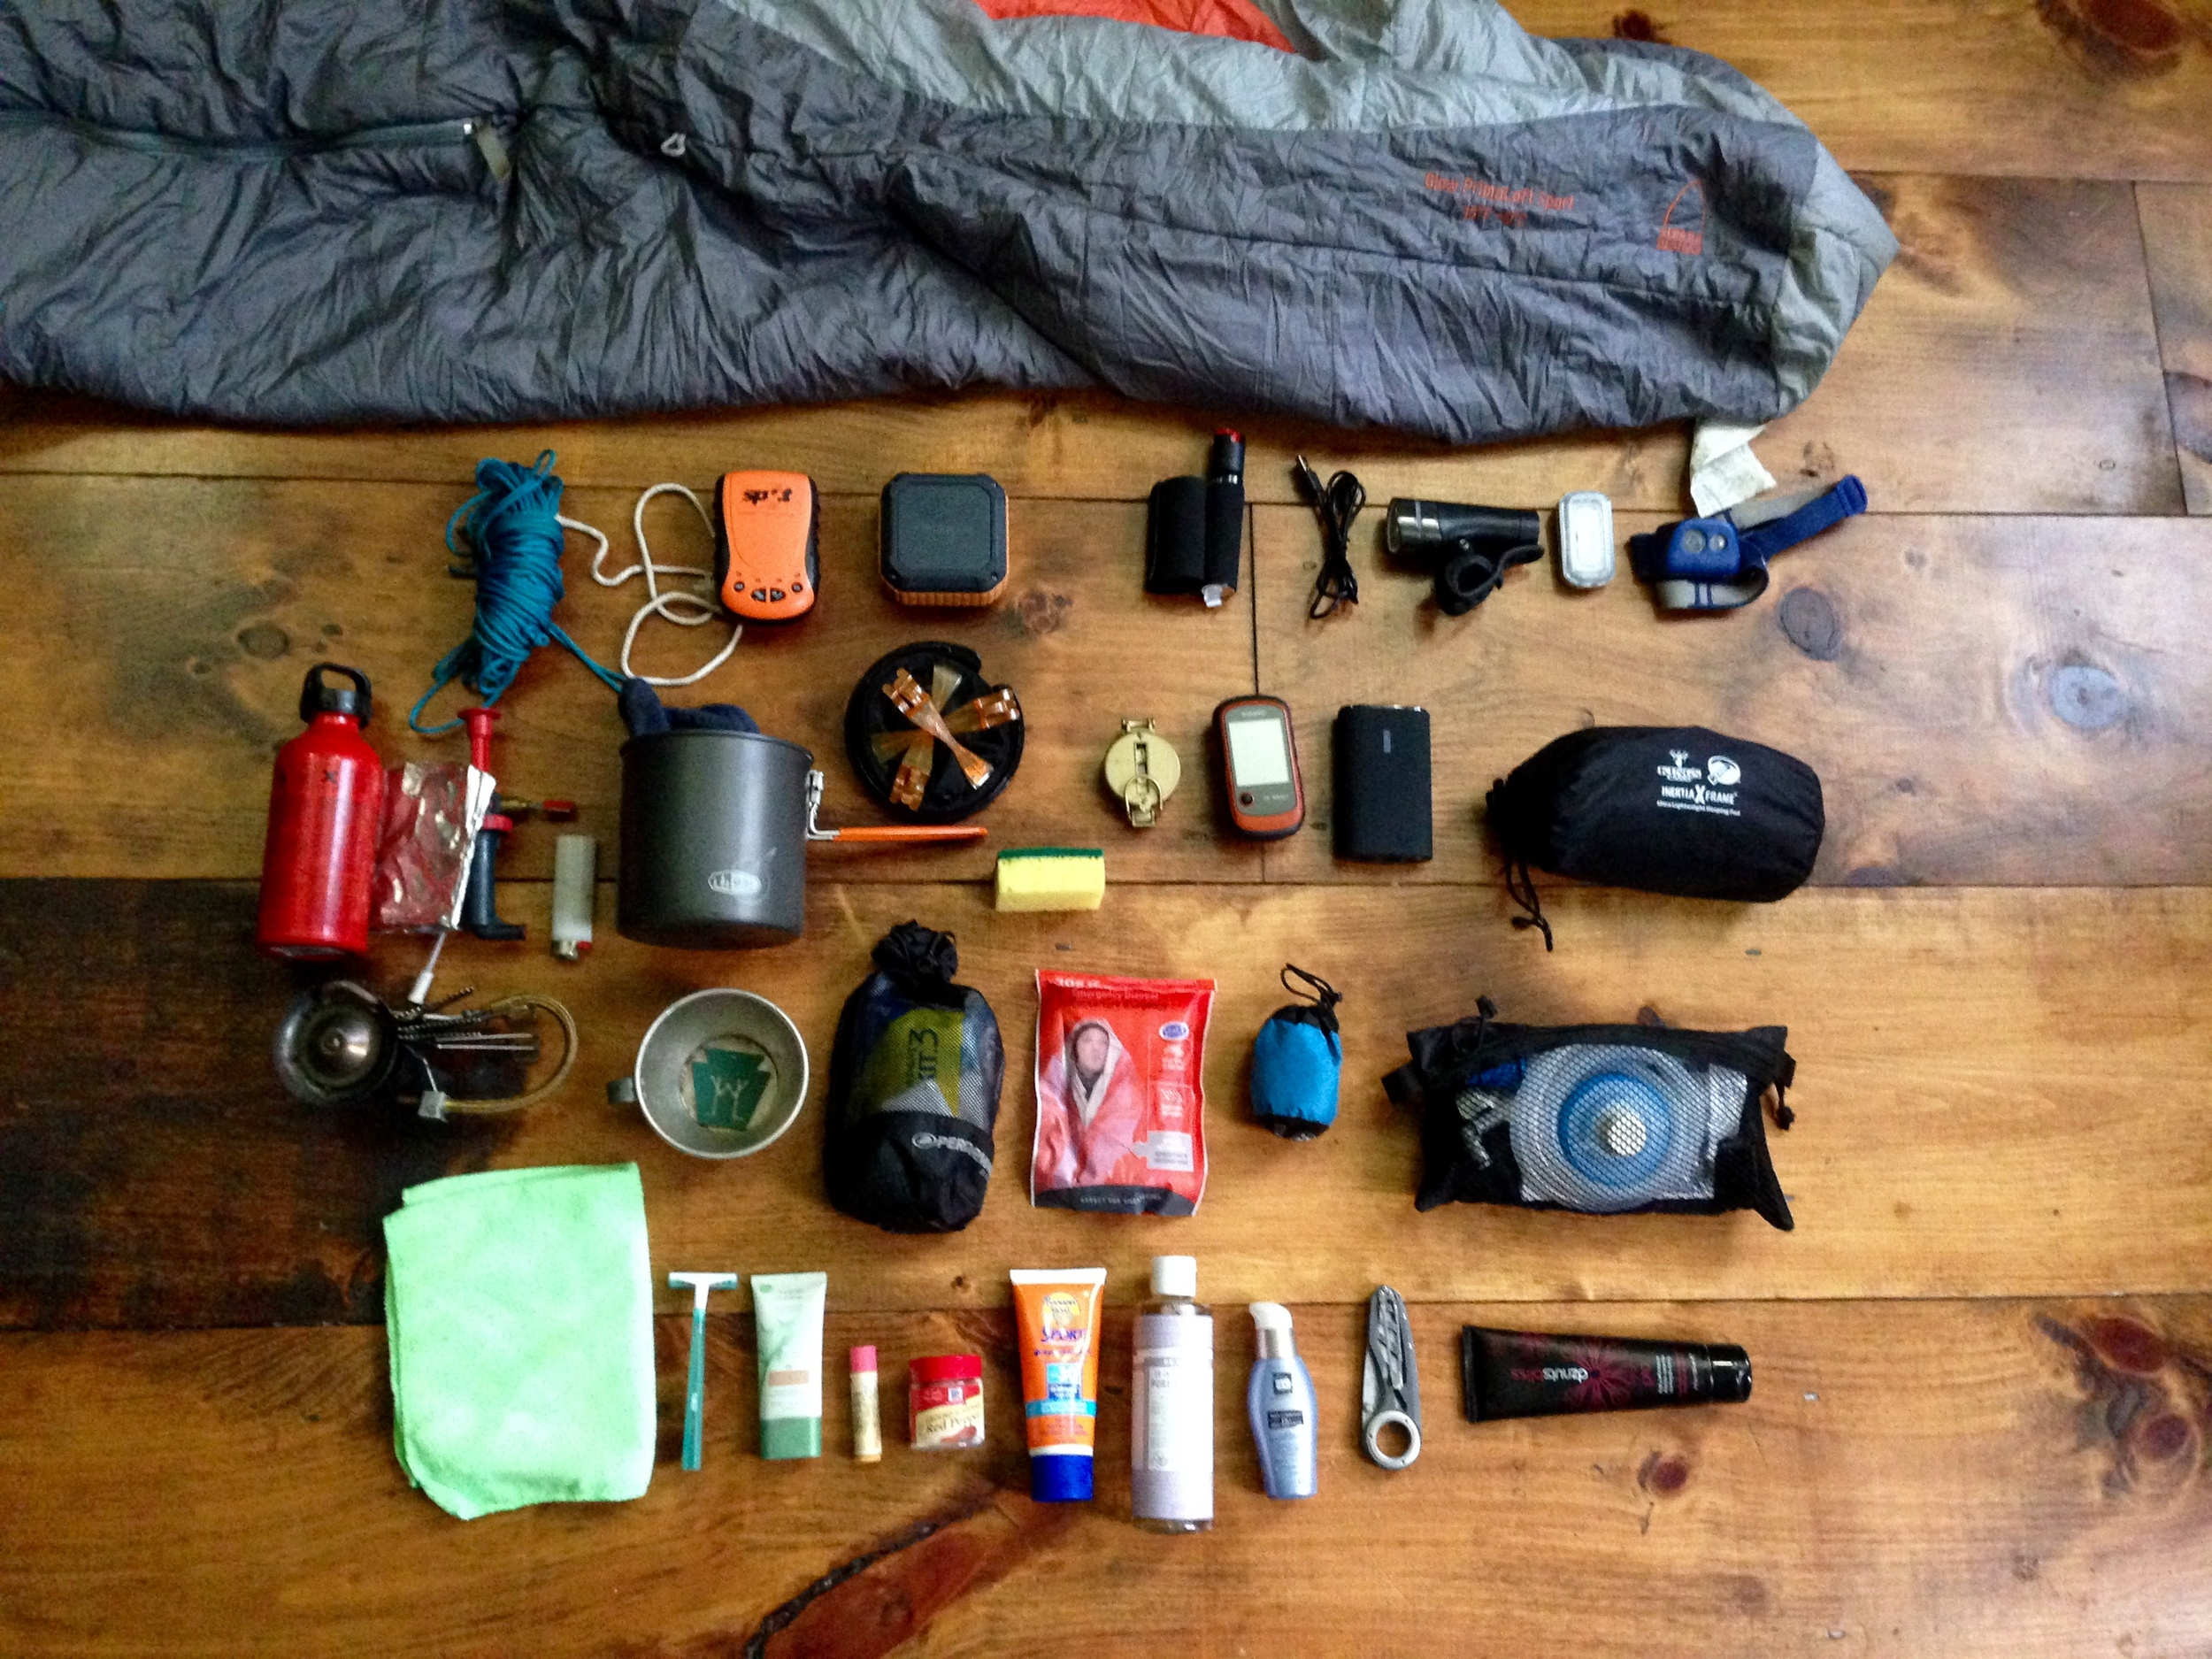 Gear knoll: 20 deg sleeping bag, head mosquito net, GPS spot tracker,#omakerspeaker, dog pepper spray,@blackburndesignfront lights, headlamp,#whisperliteinternational, fuel canister (no fuel inside), GSI stove set, GSI camp coffee pour-over thingy, trusty compass,#garminetrex20,#Anker2nd gen 9600mAh external battery pack,#klymitx-frame sleeping pad (camo print 😉), camp cup,#LLWHtoken, first aid kit, emergency blanket,@platypuswater system, camp towel, bic razor, face sunscreen, Chapstick, hair product, sunscreen, all-purpose soap#drbronners, camp knife, and#DZNUTS